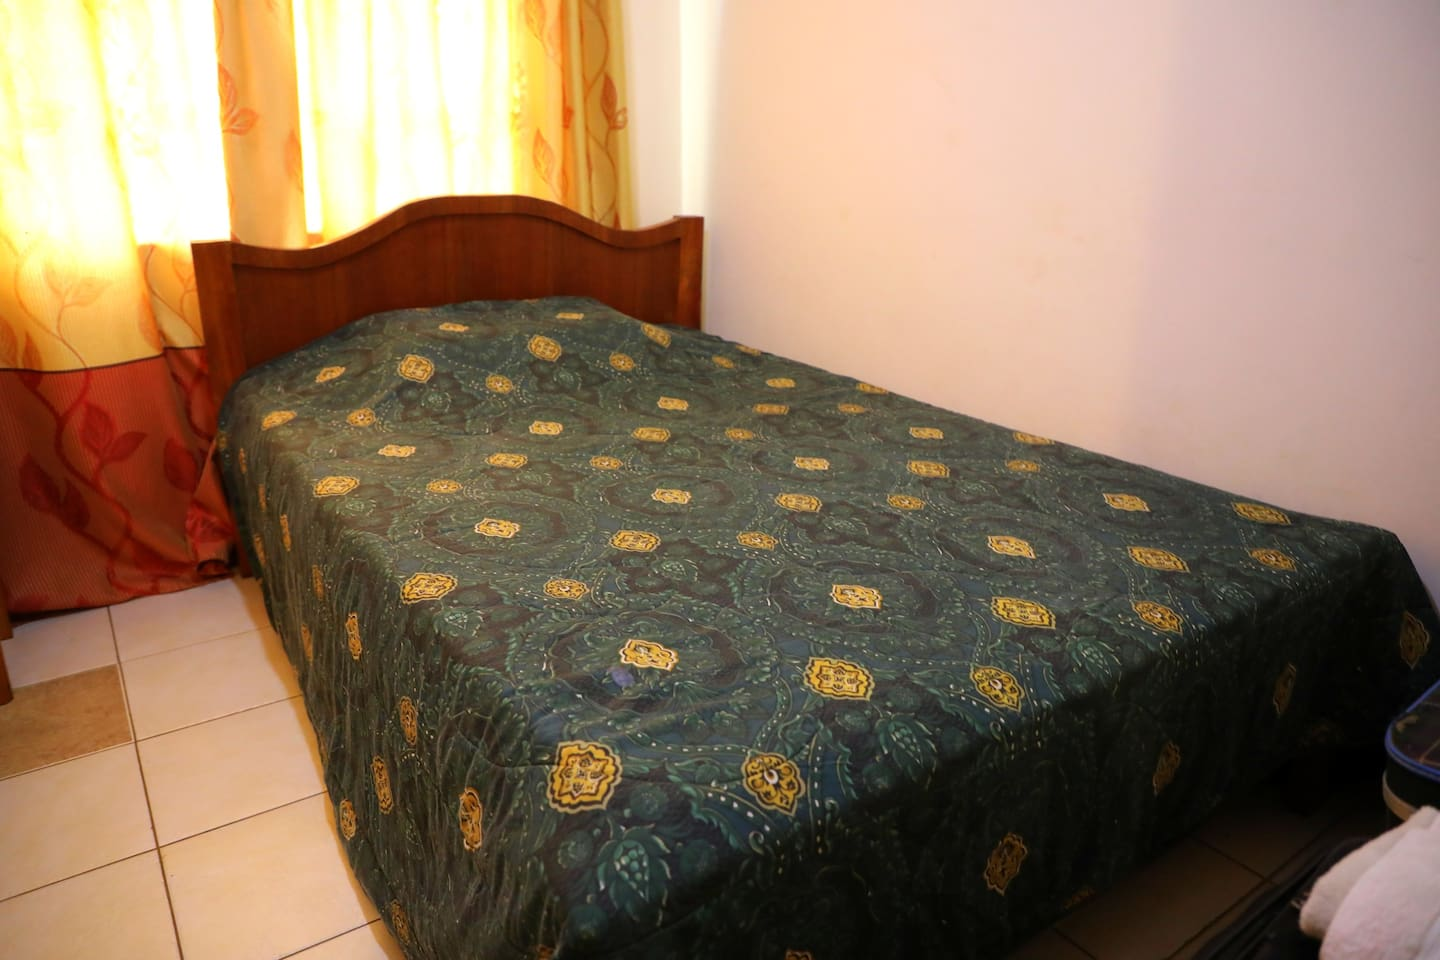 Private Bedroom available for booking with access to all amenities in the household.